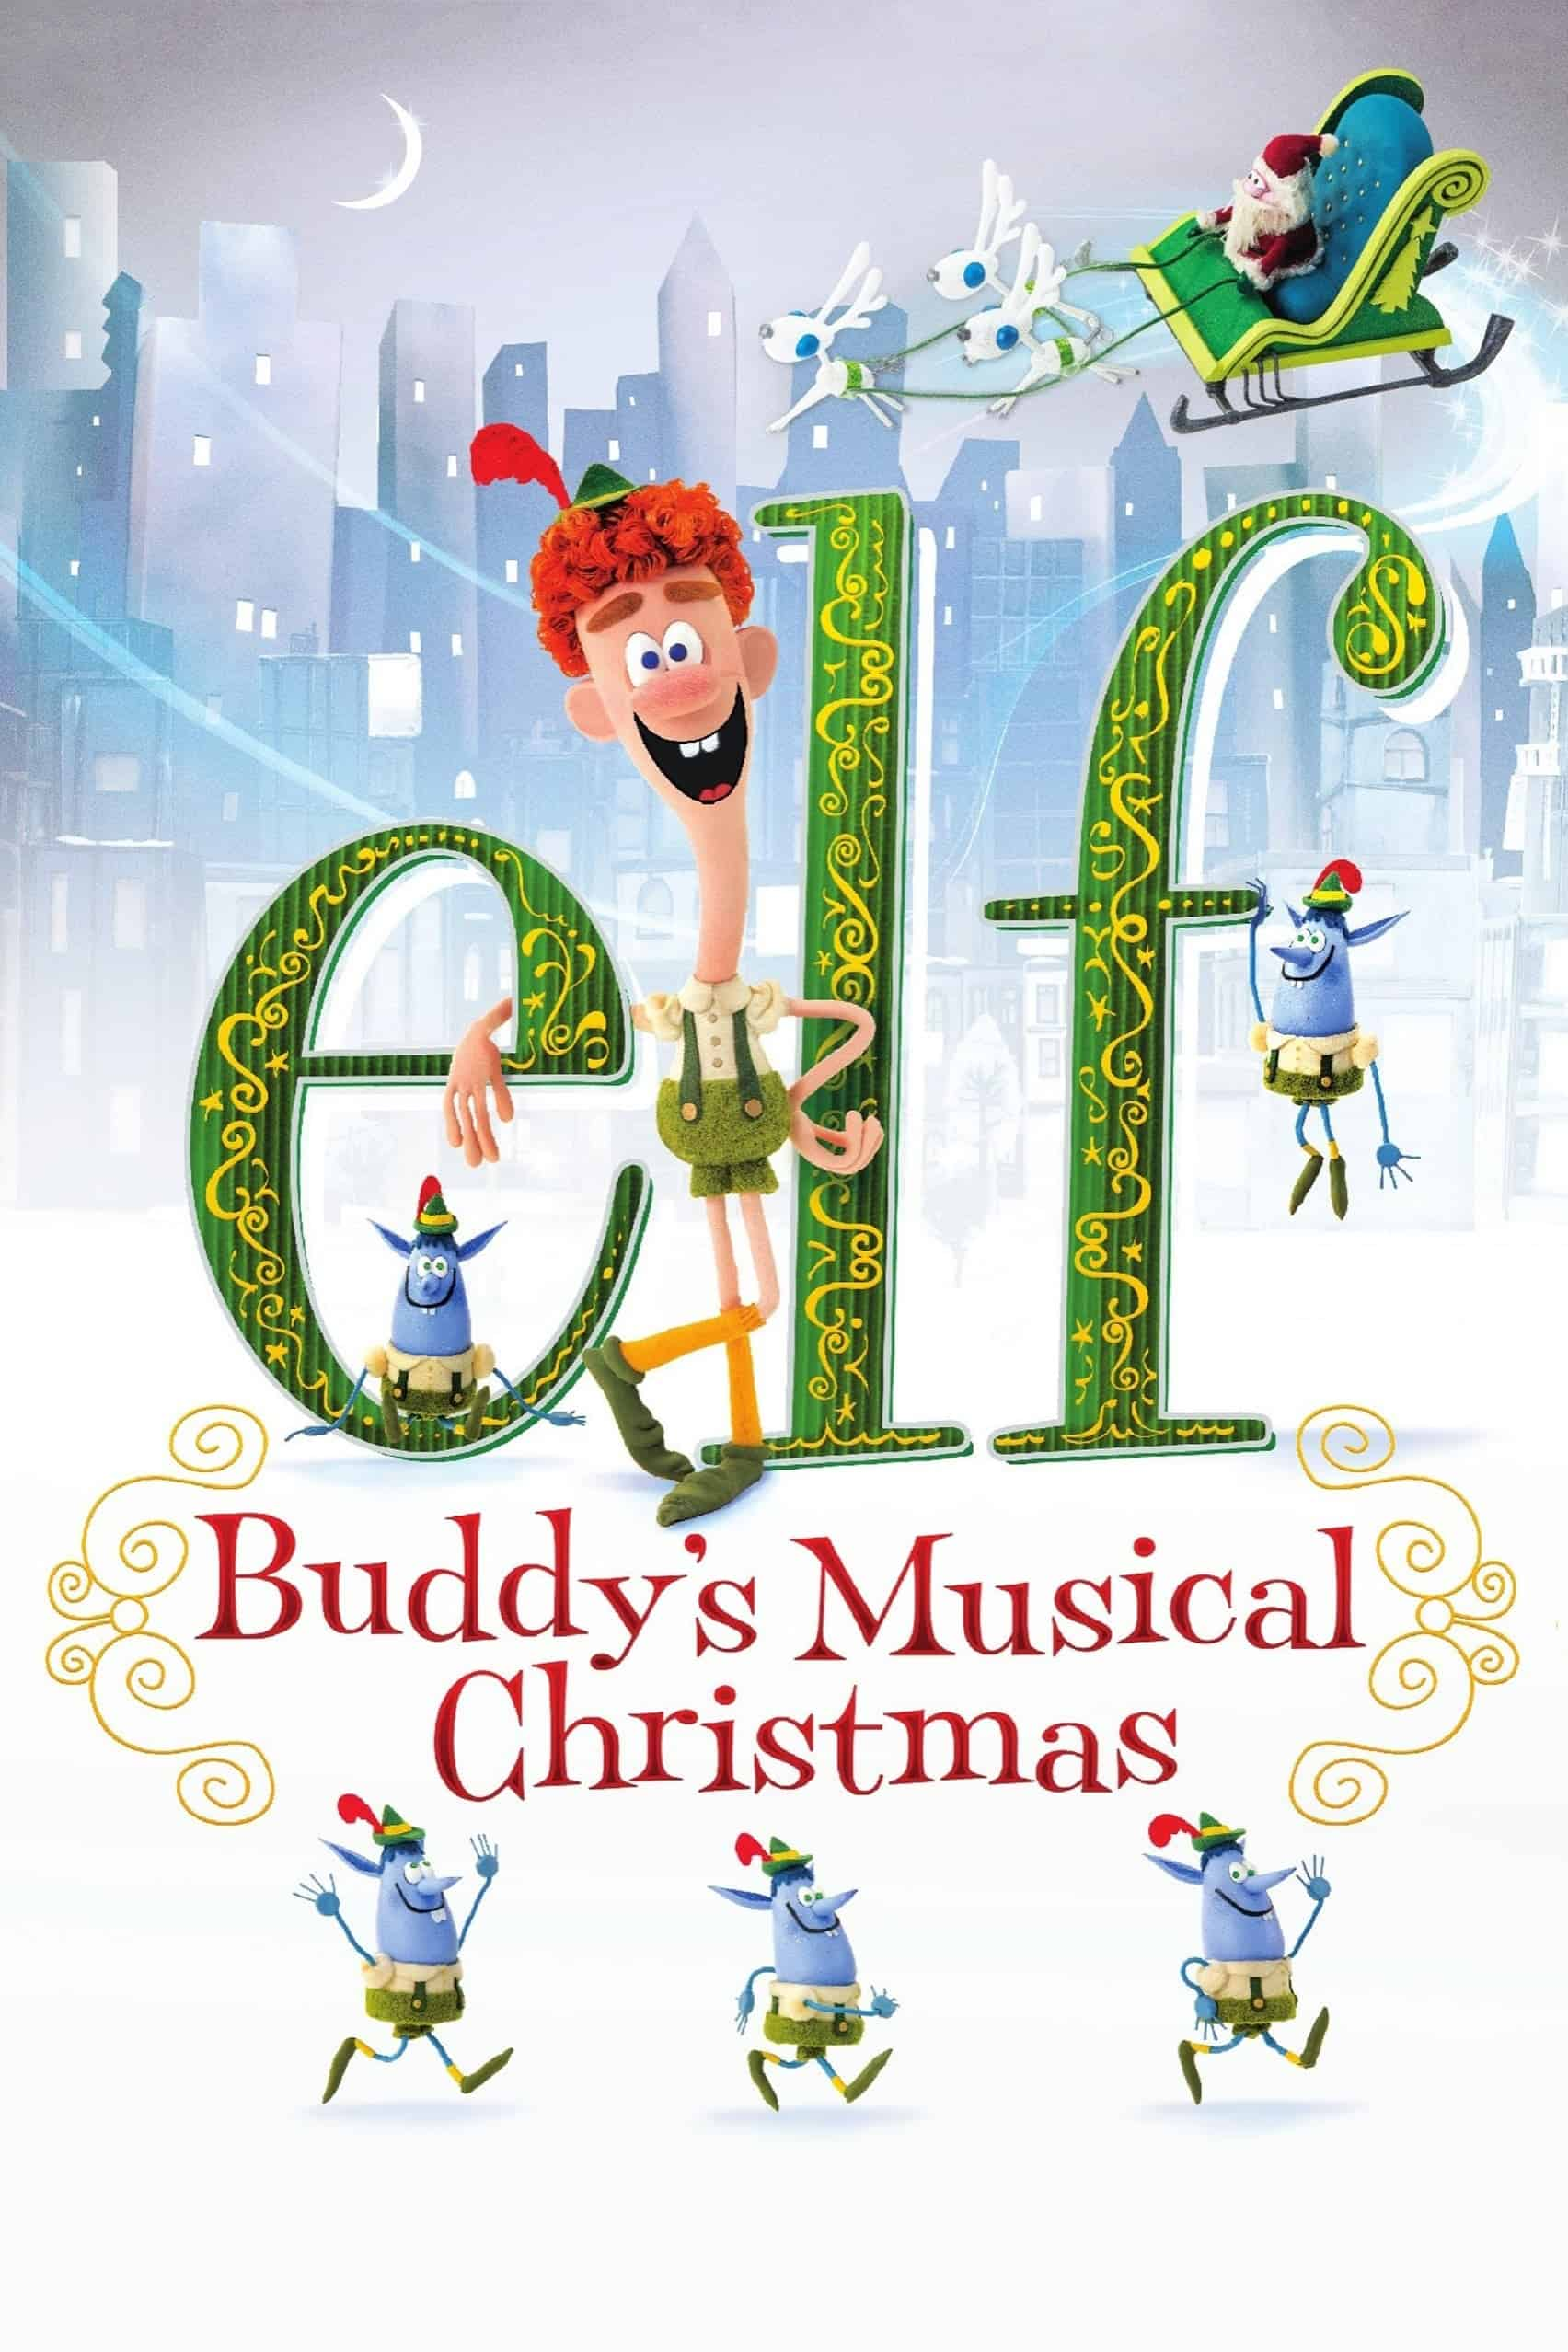 Elf: Buddy's Musical Christmas, 2014